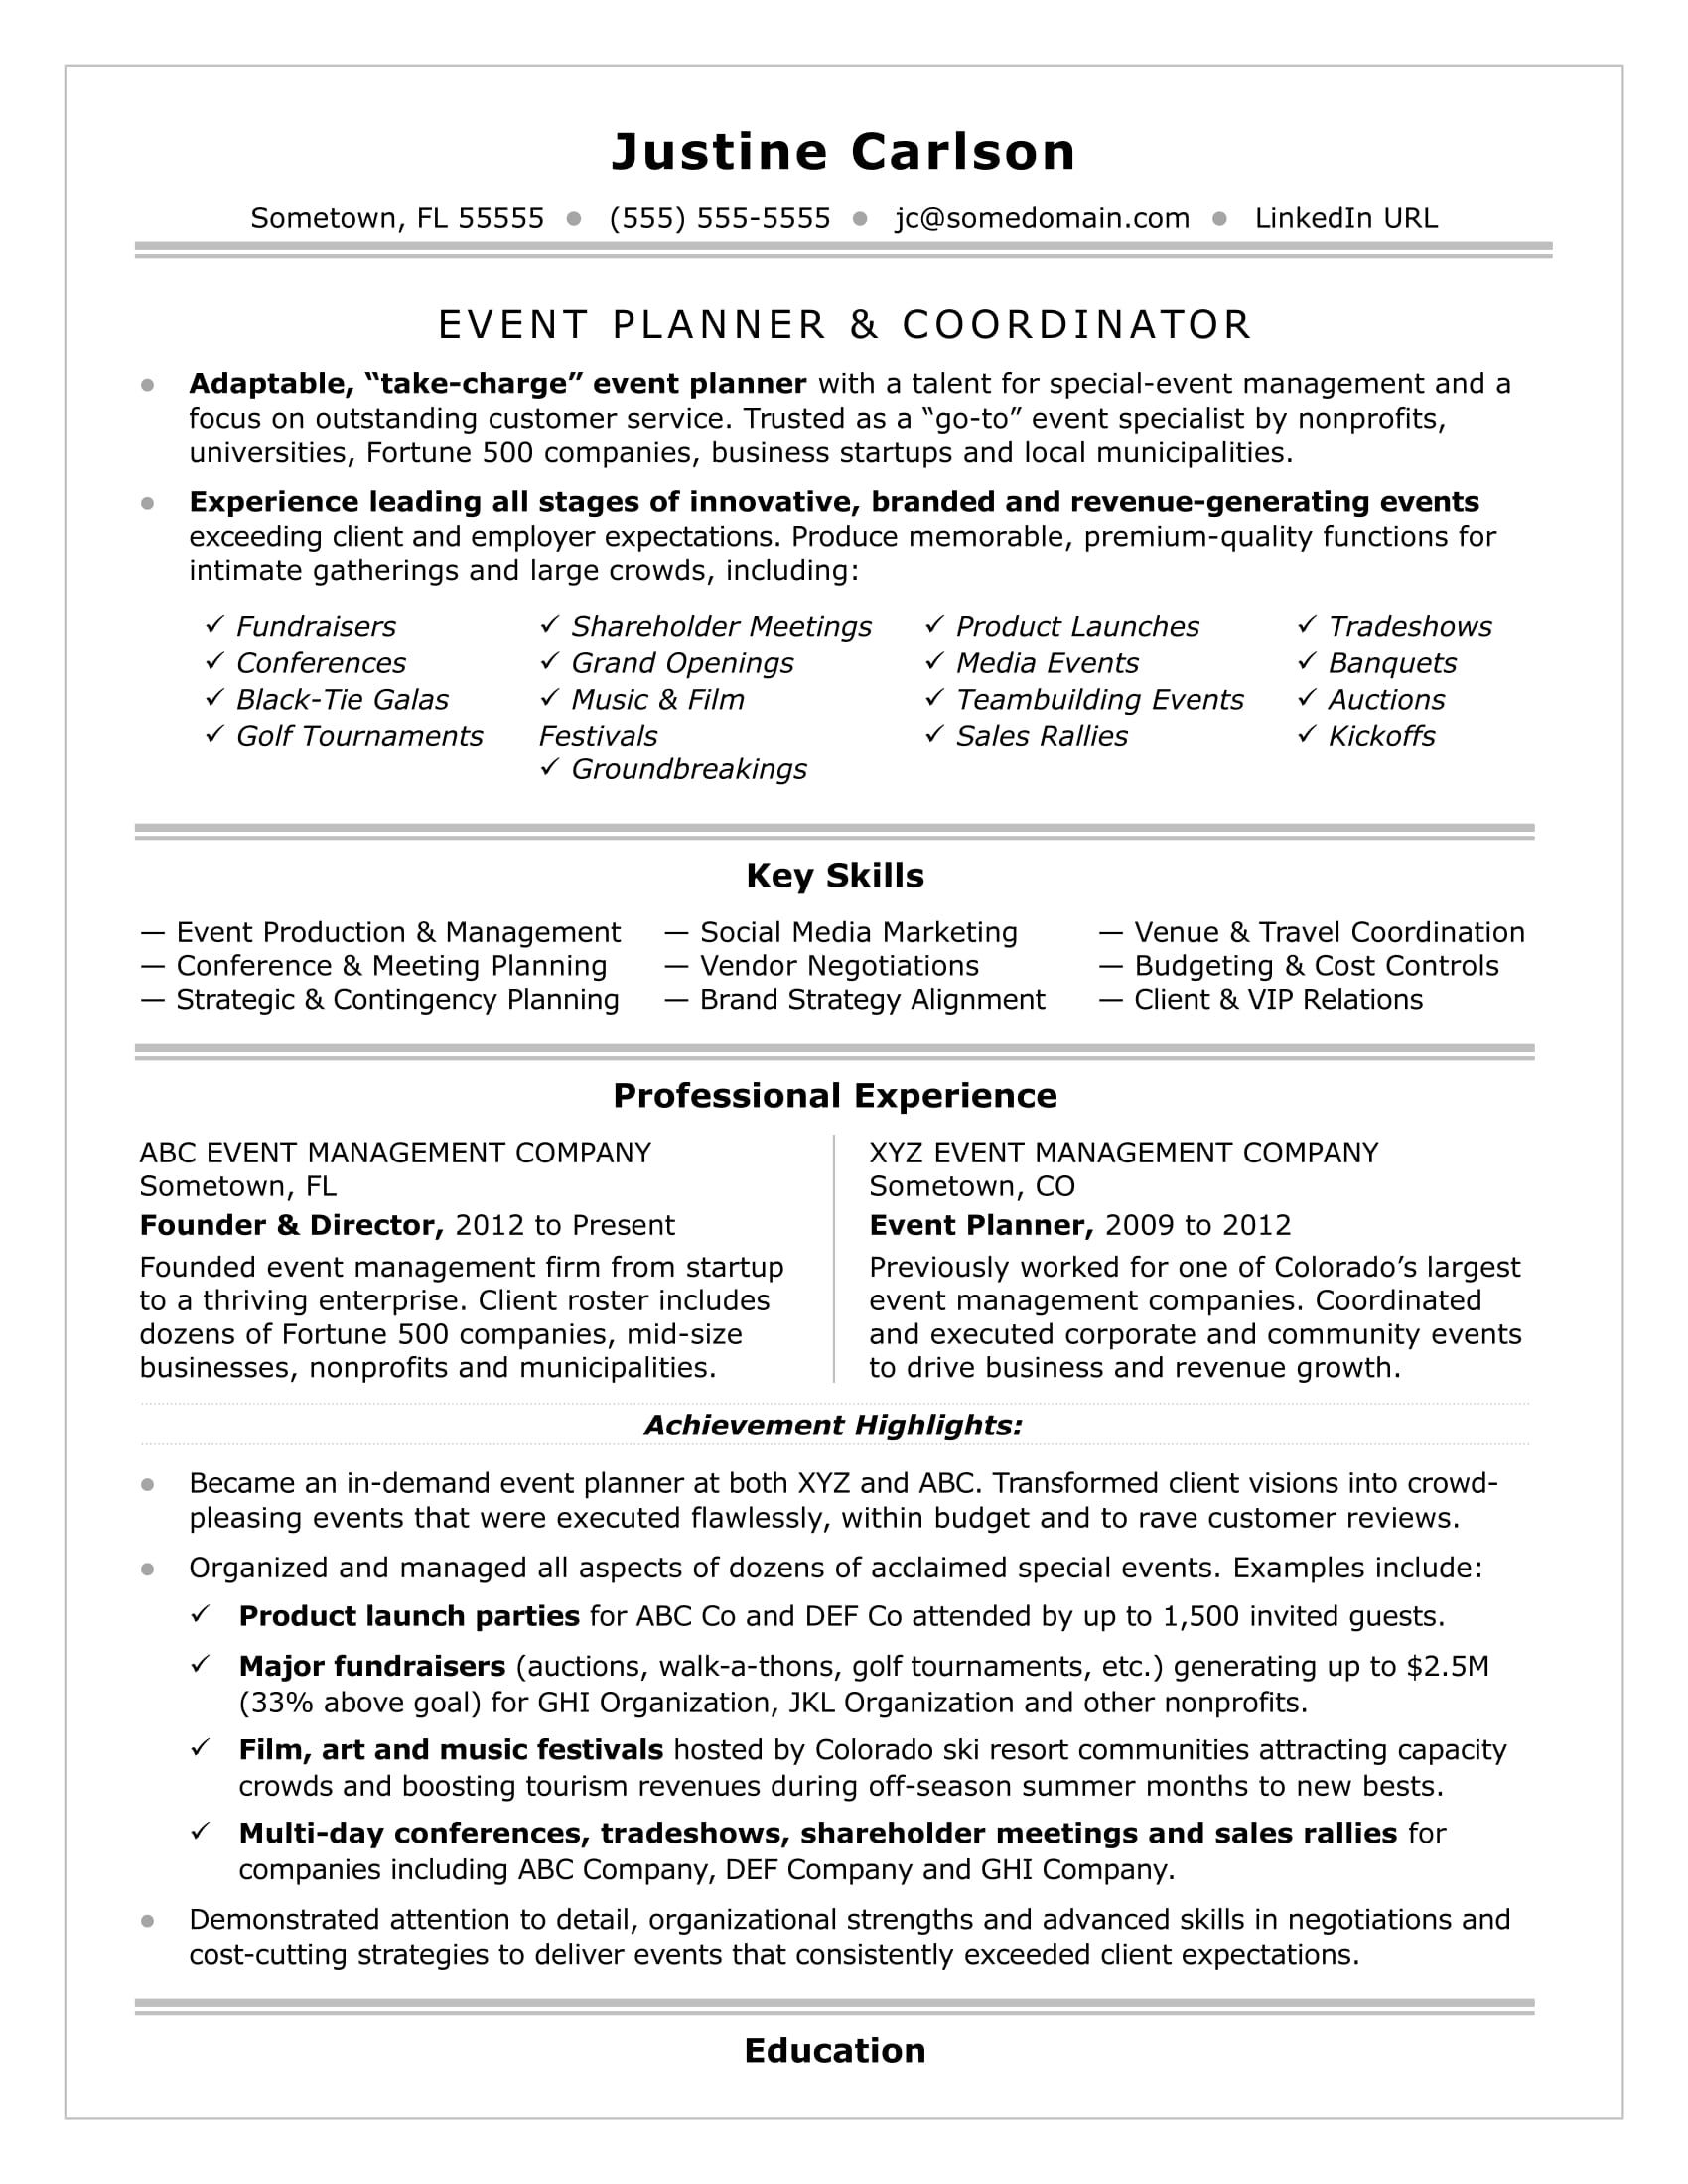 Events Coordinator Resume Classy Event Coordinator Resume Sample  Resume Examples Sample Resume And .